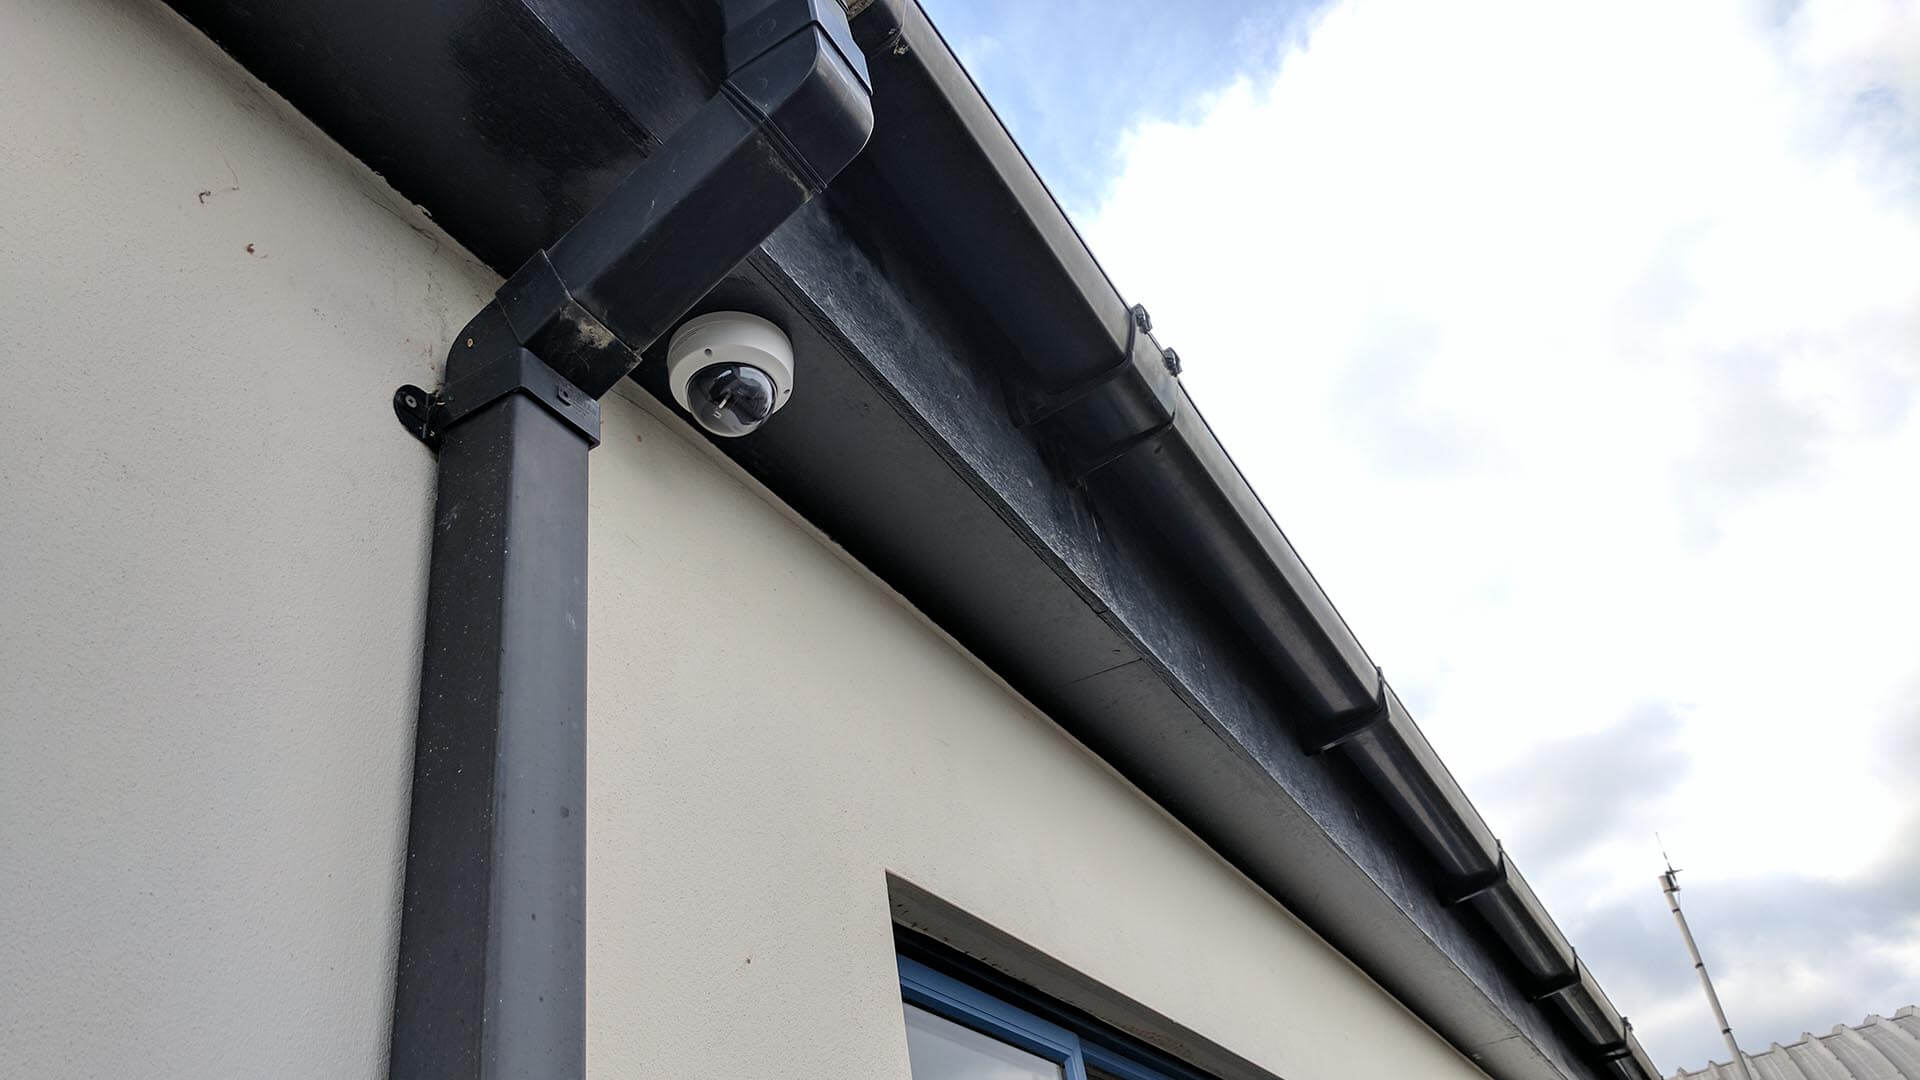 CCTV Installation in Bermondsey